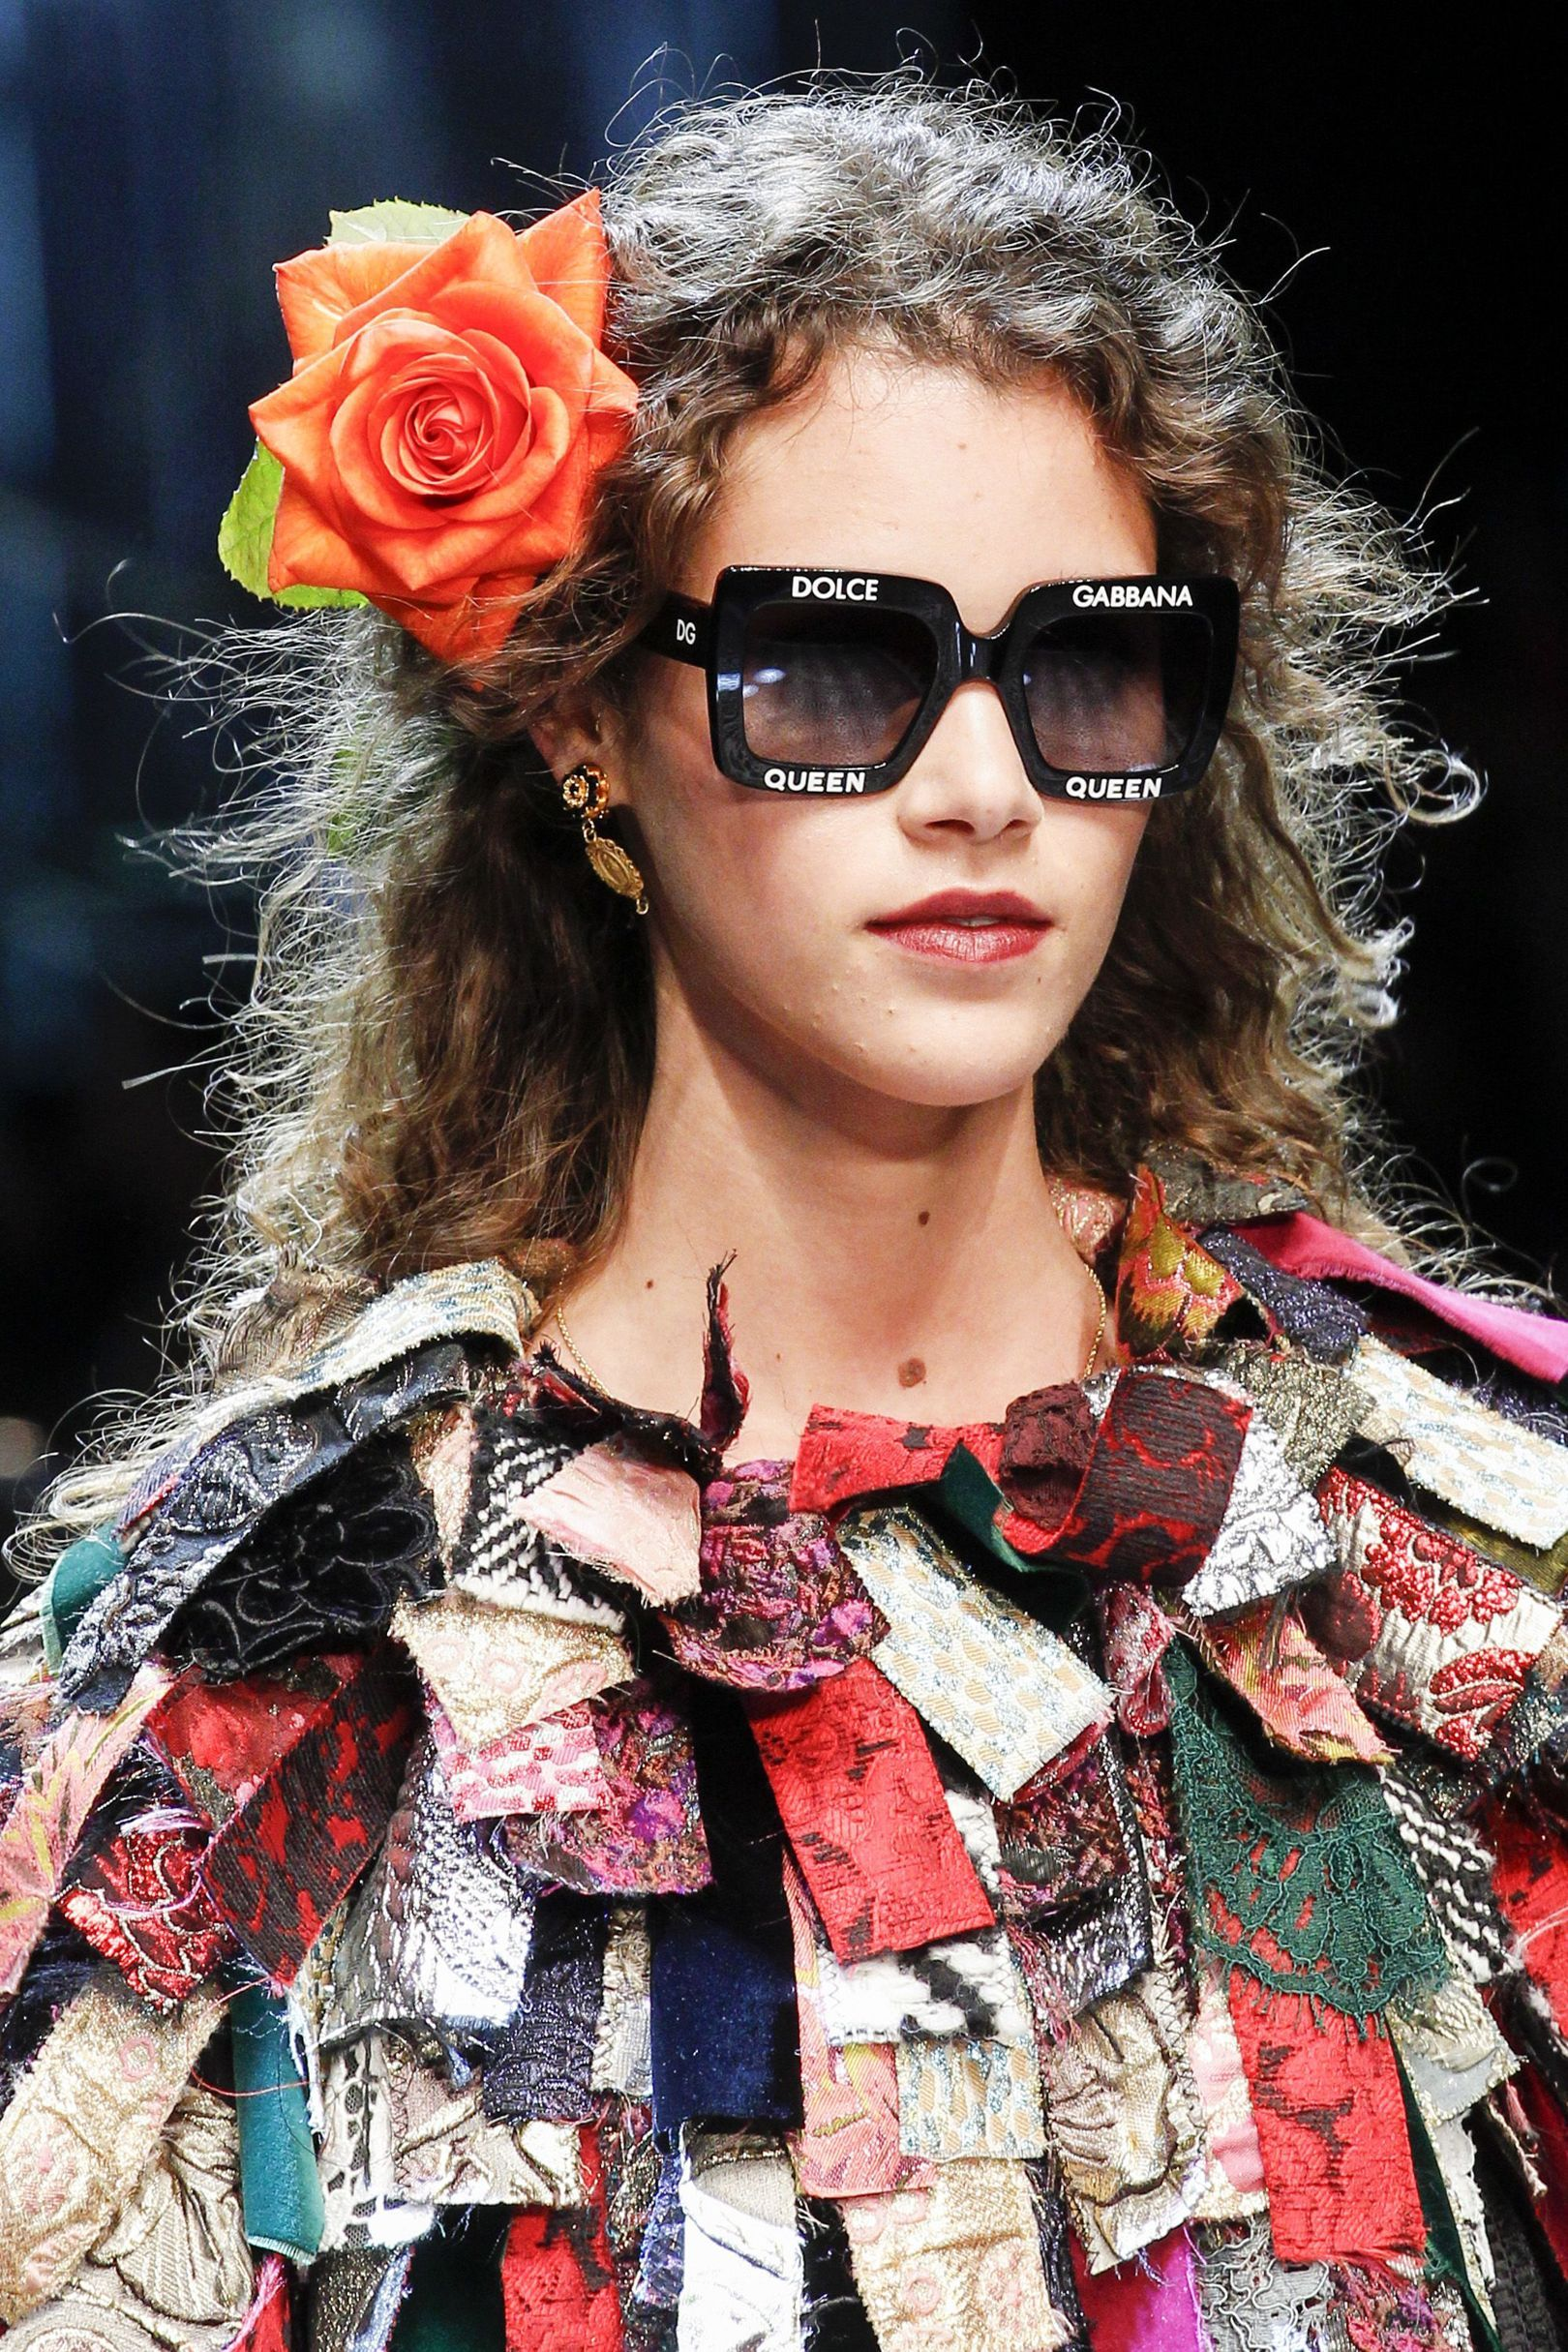 The City: Milan The Show: Dolce & Gabbana The Look: Crowns & flowers